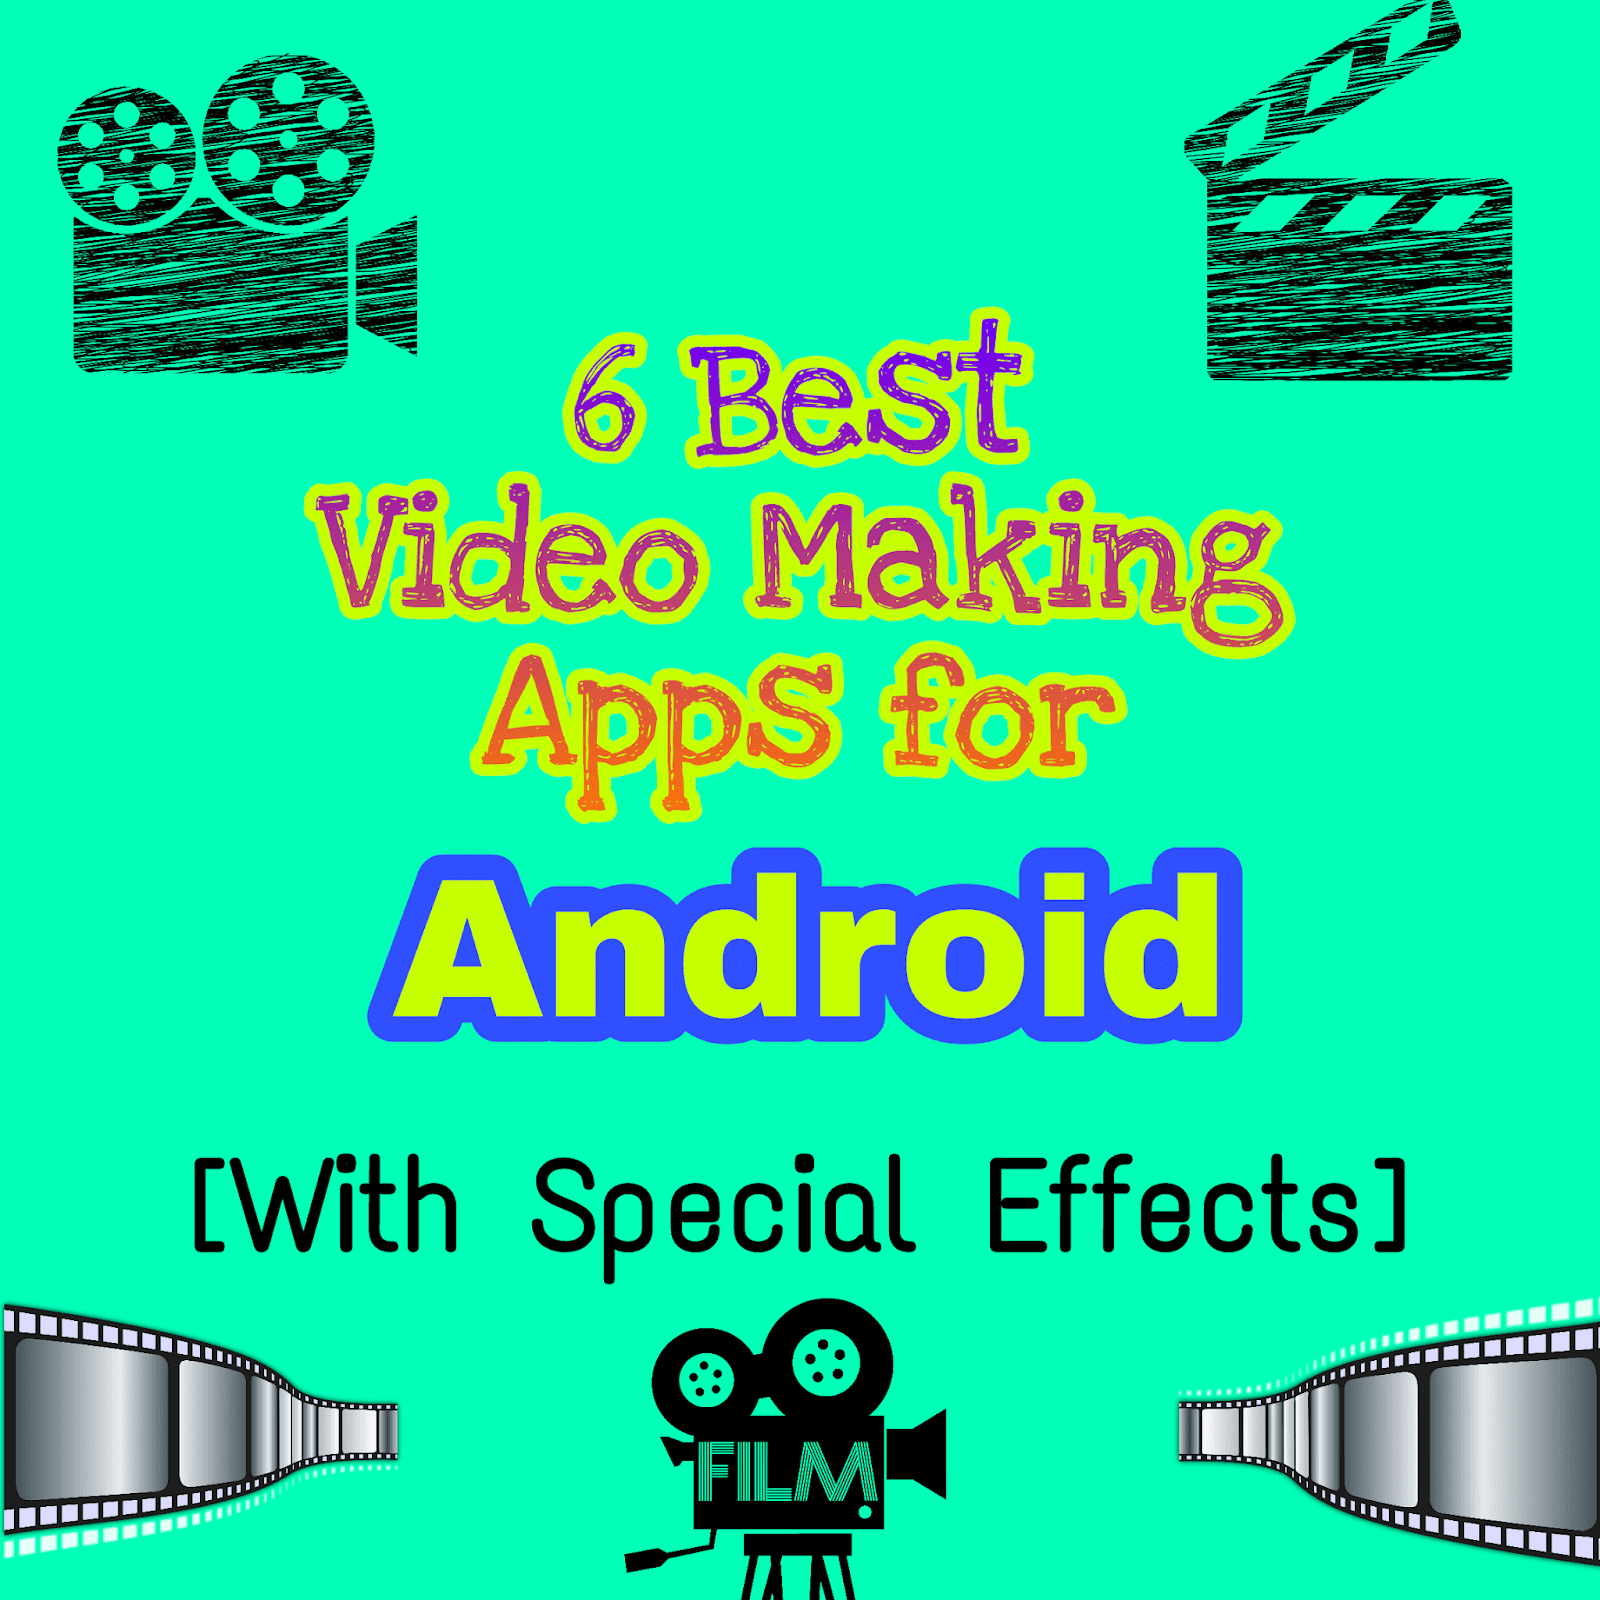 Best Video Making Apps for Android [With Special Effects] - Techopops